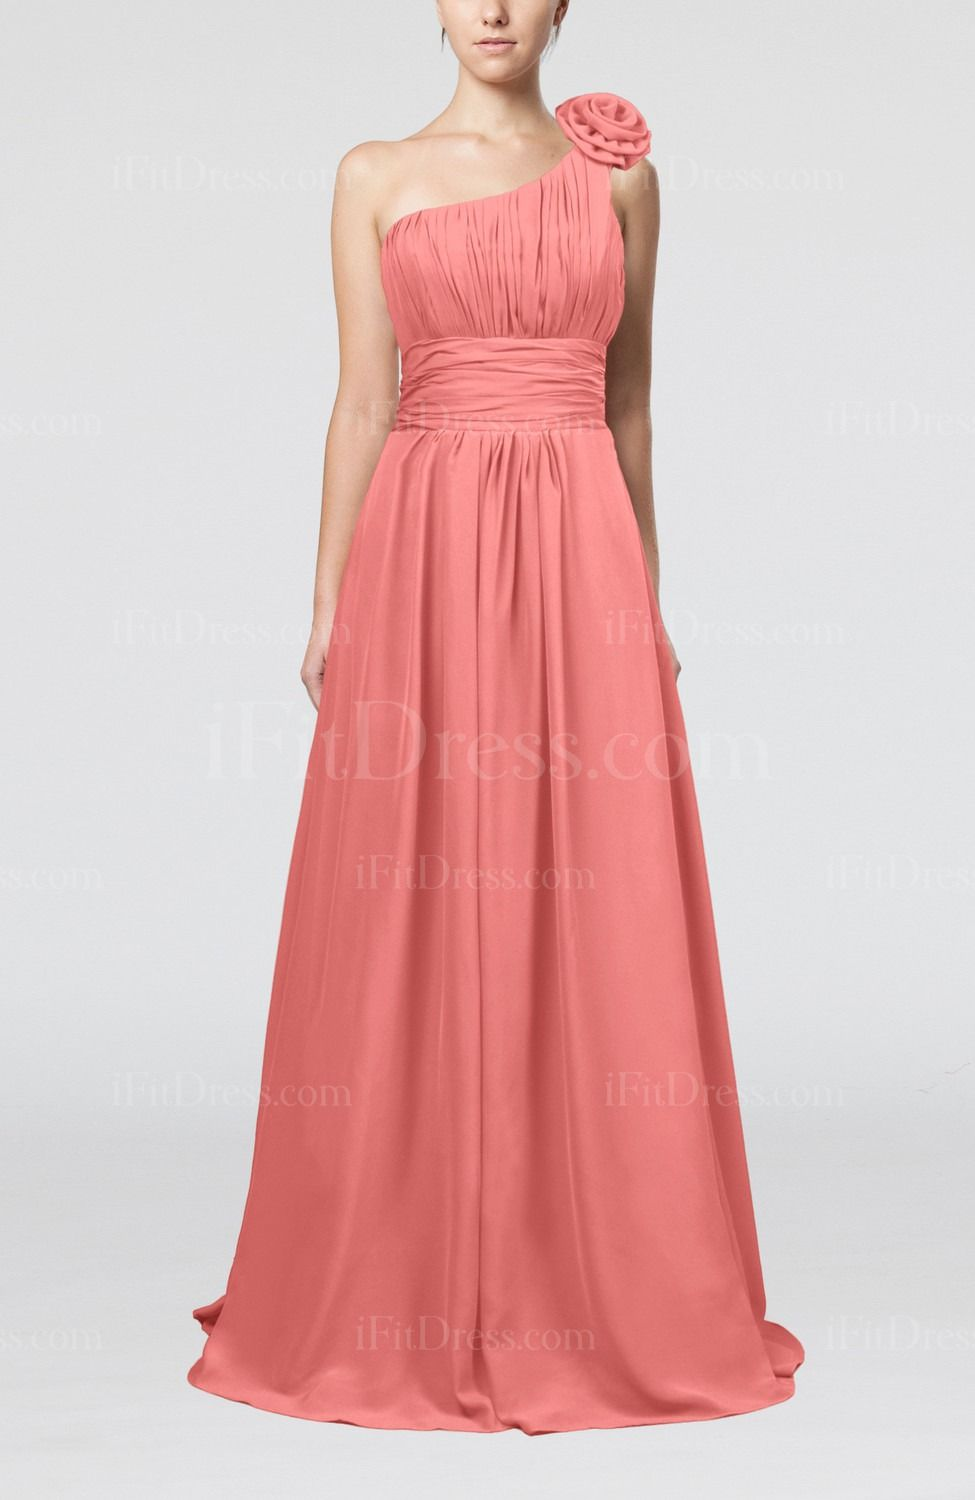 Click to enlarge | Mother of the Bride dress ideas | Pinterest